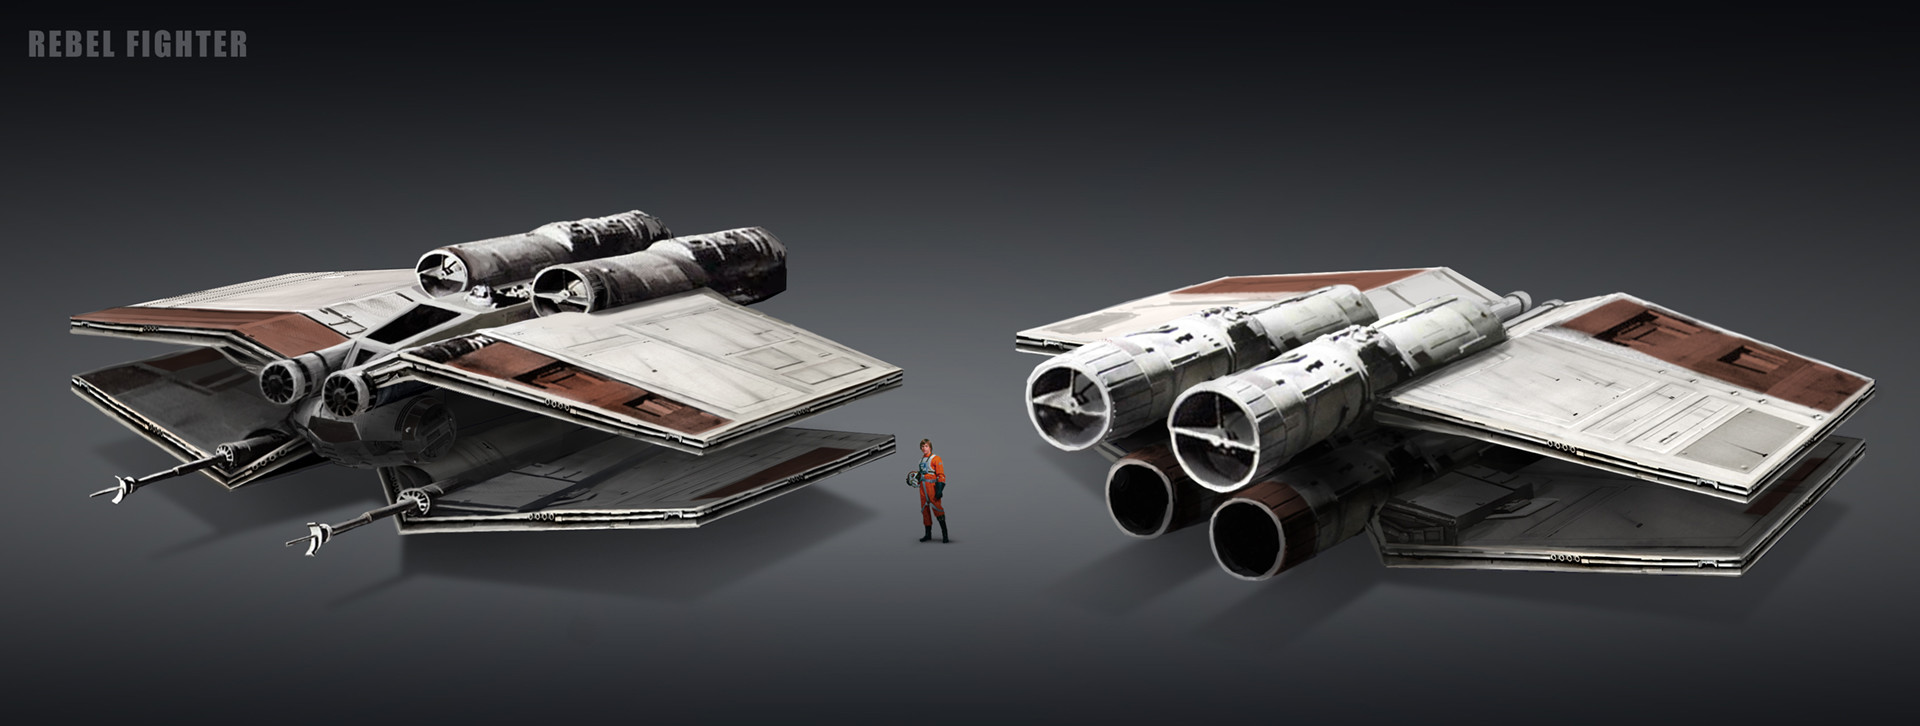 Eva kedves 4 rebel fighter base concept